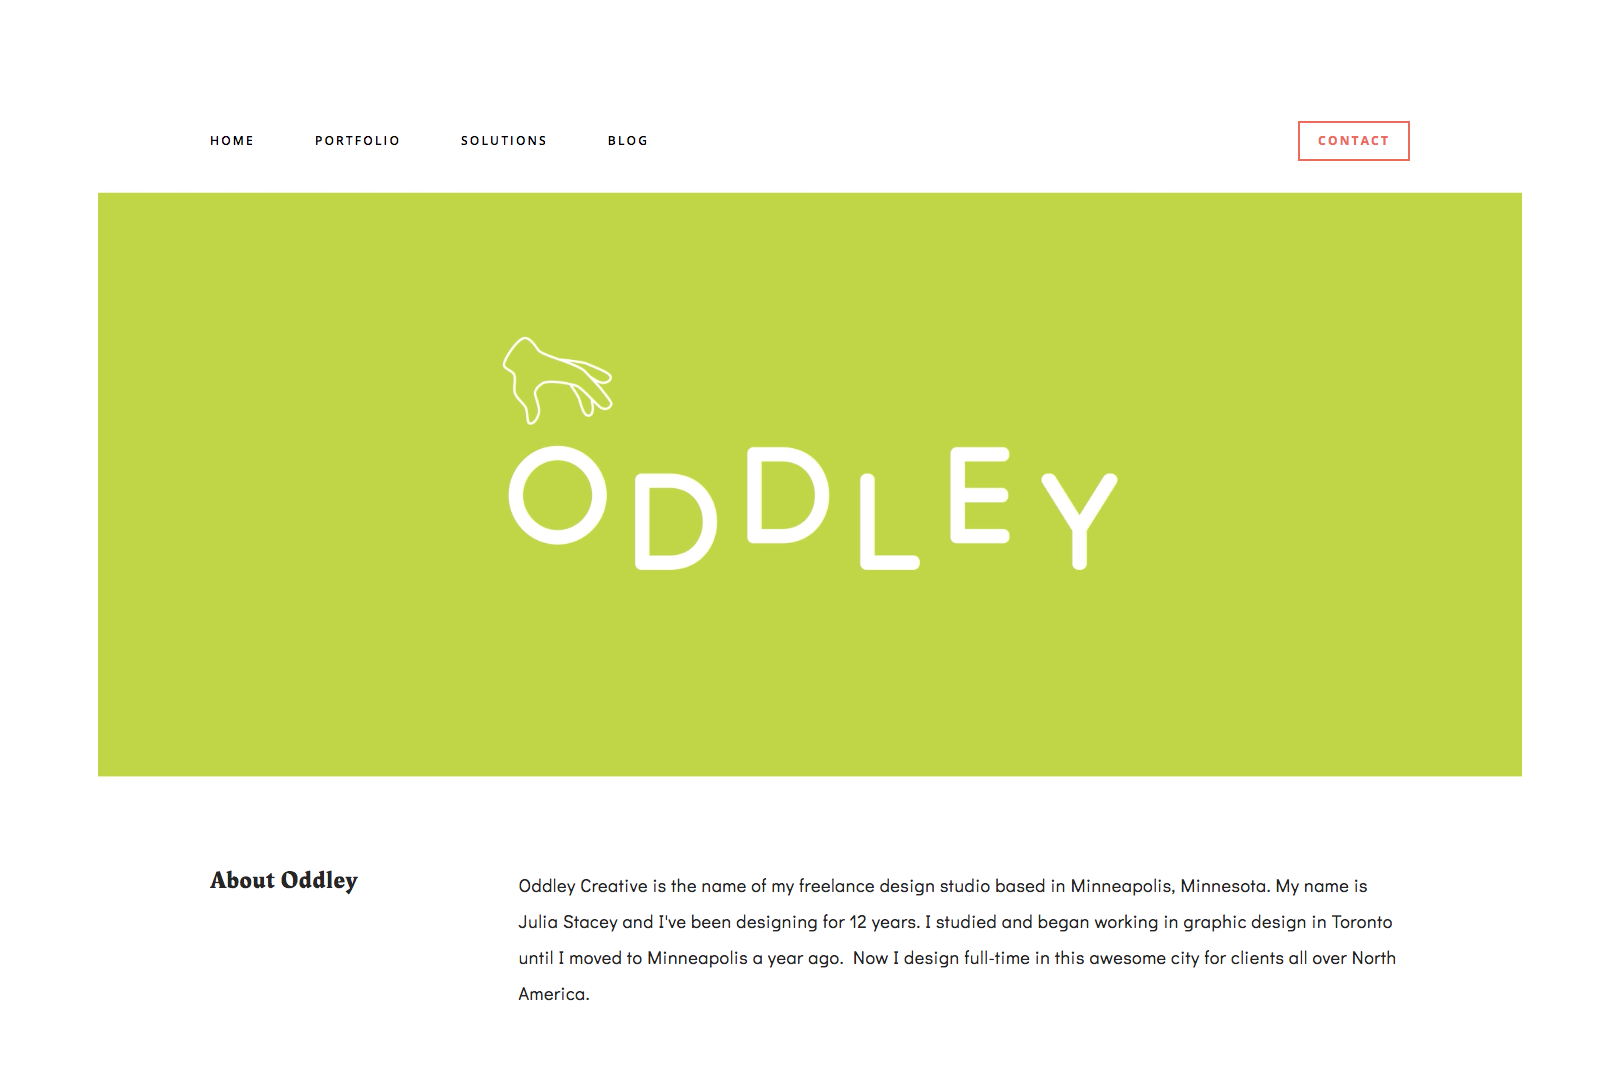 Oddley Creative | Bark Profile and Reviews